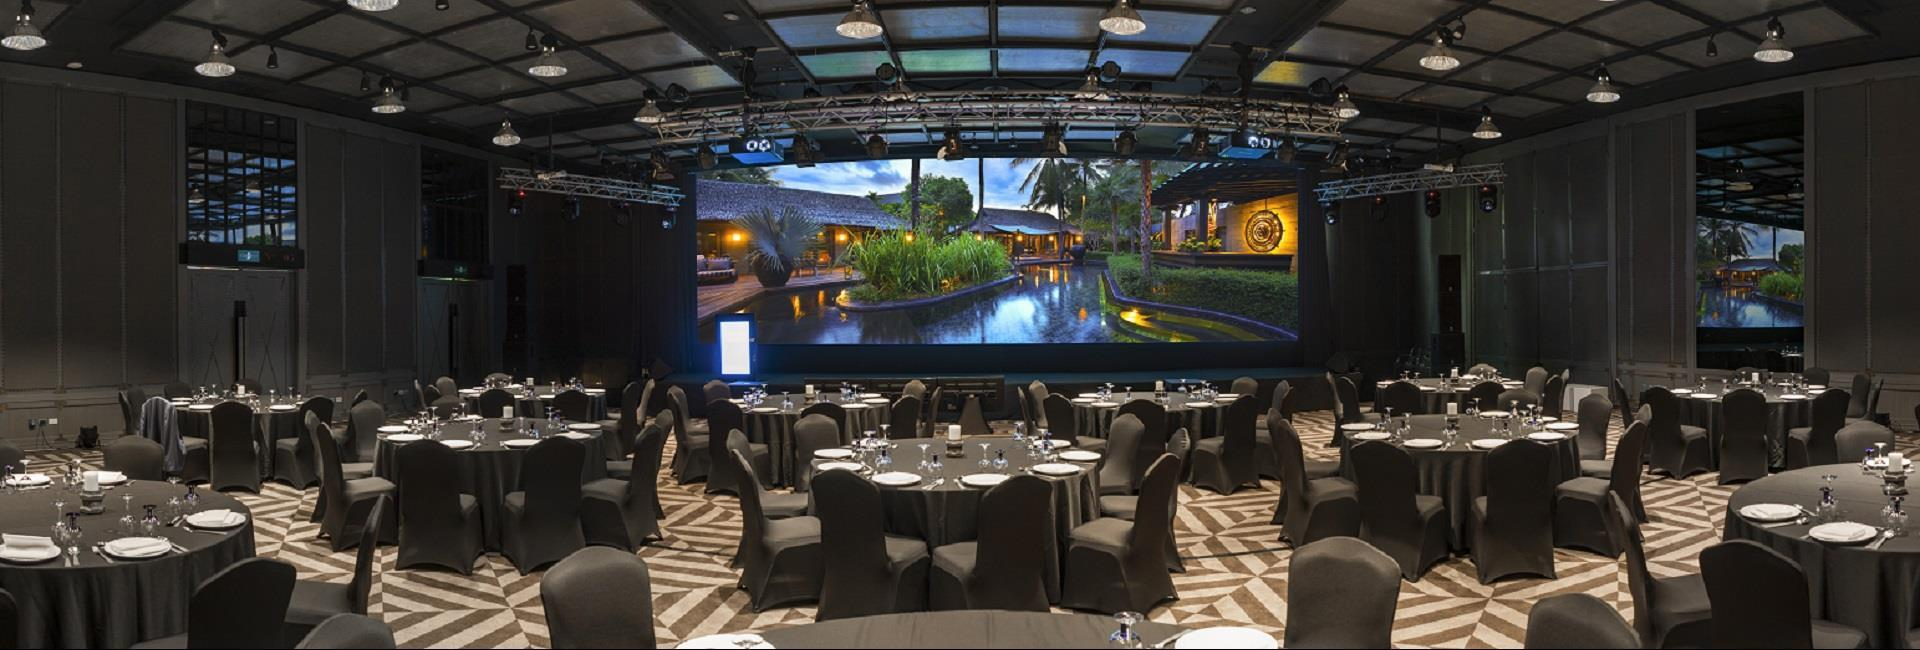 meetings & events at the slate, phuket, th